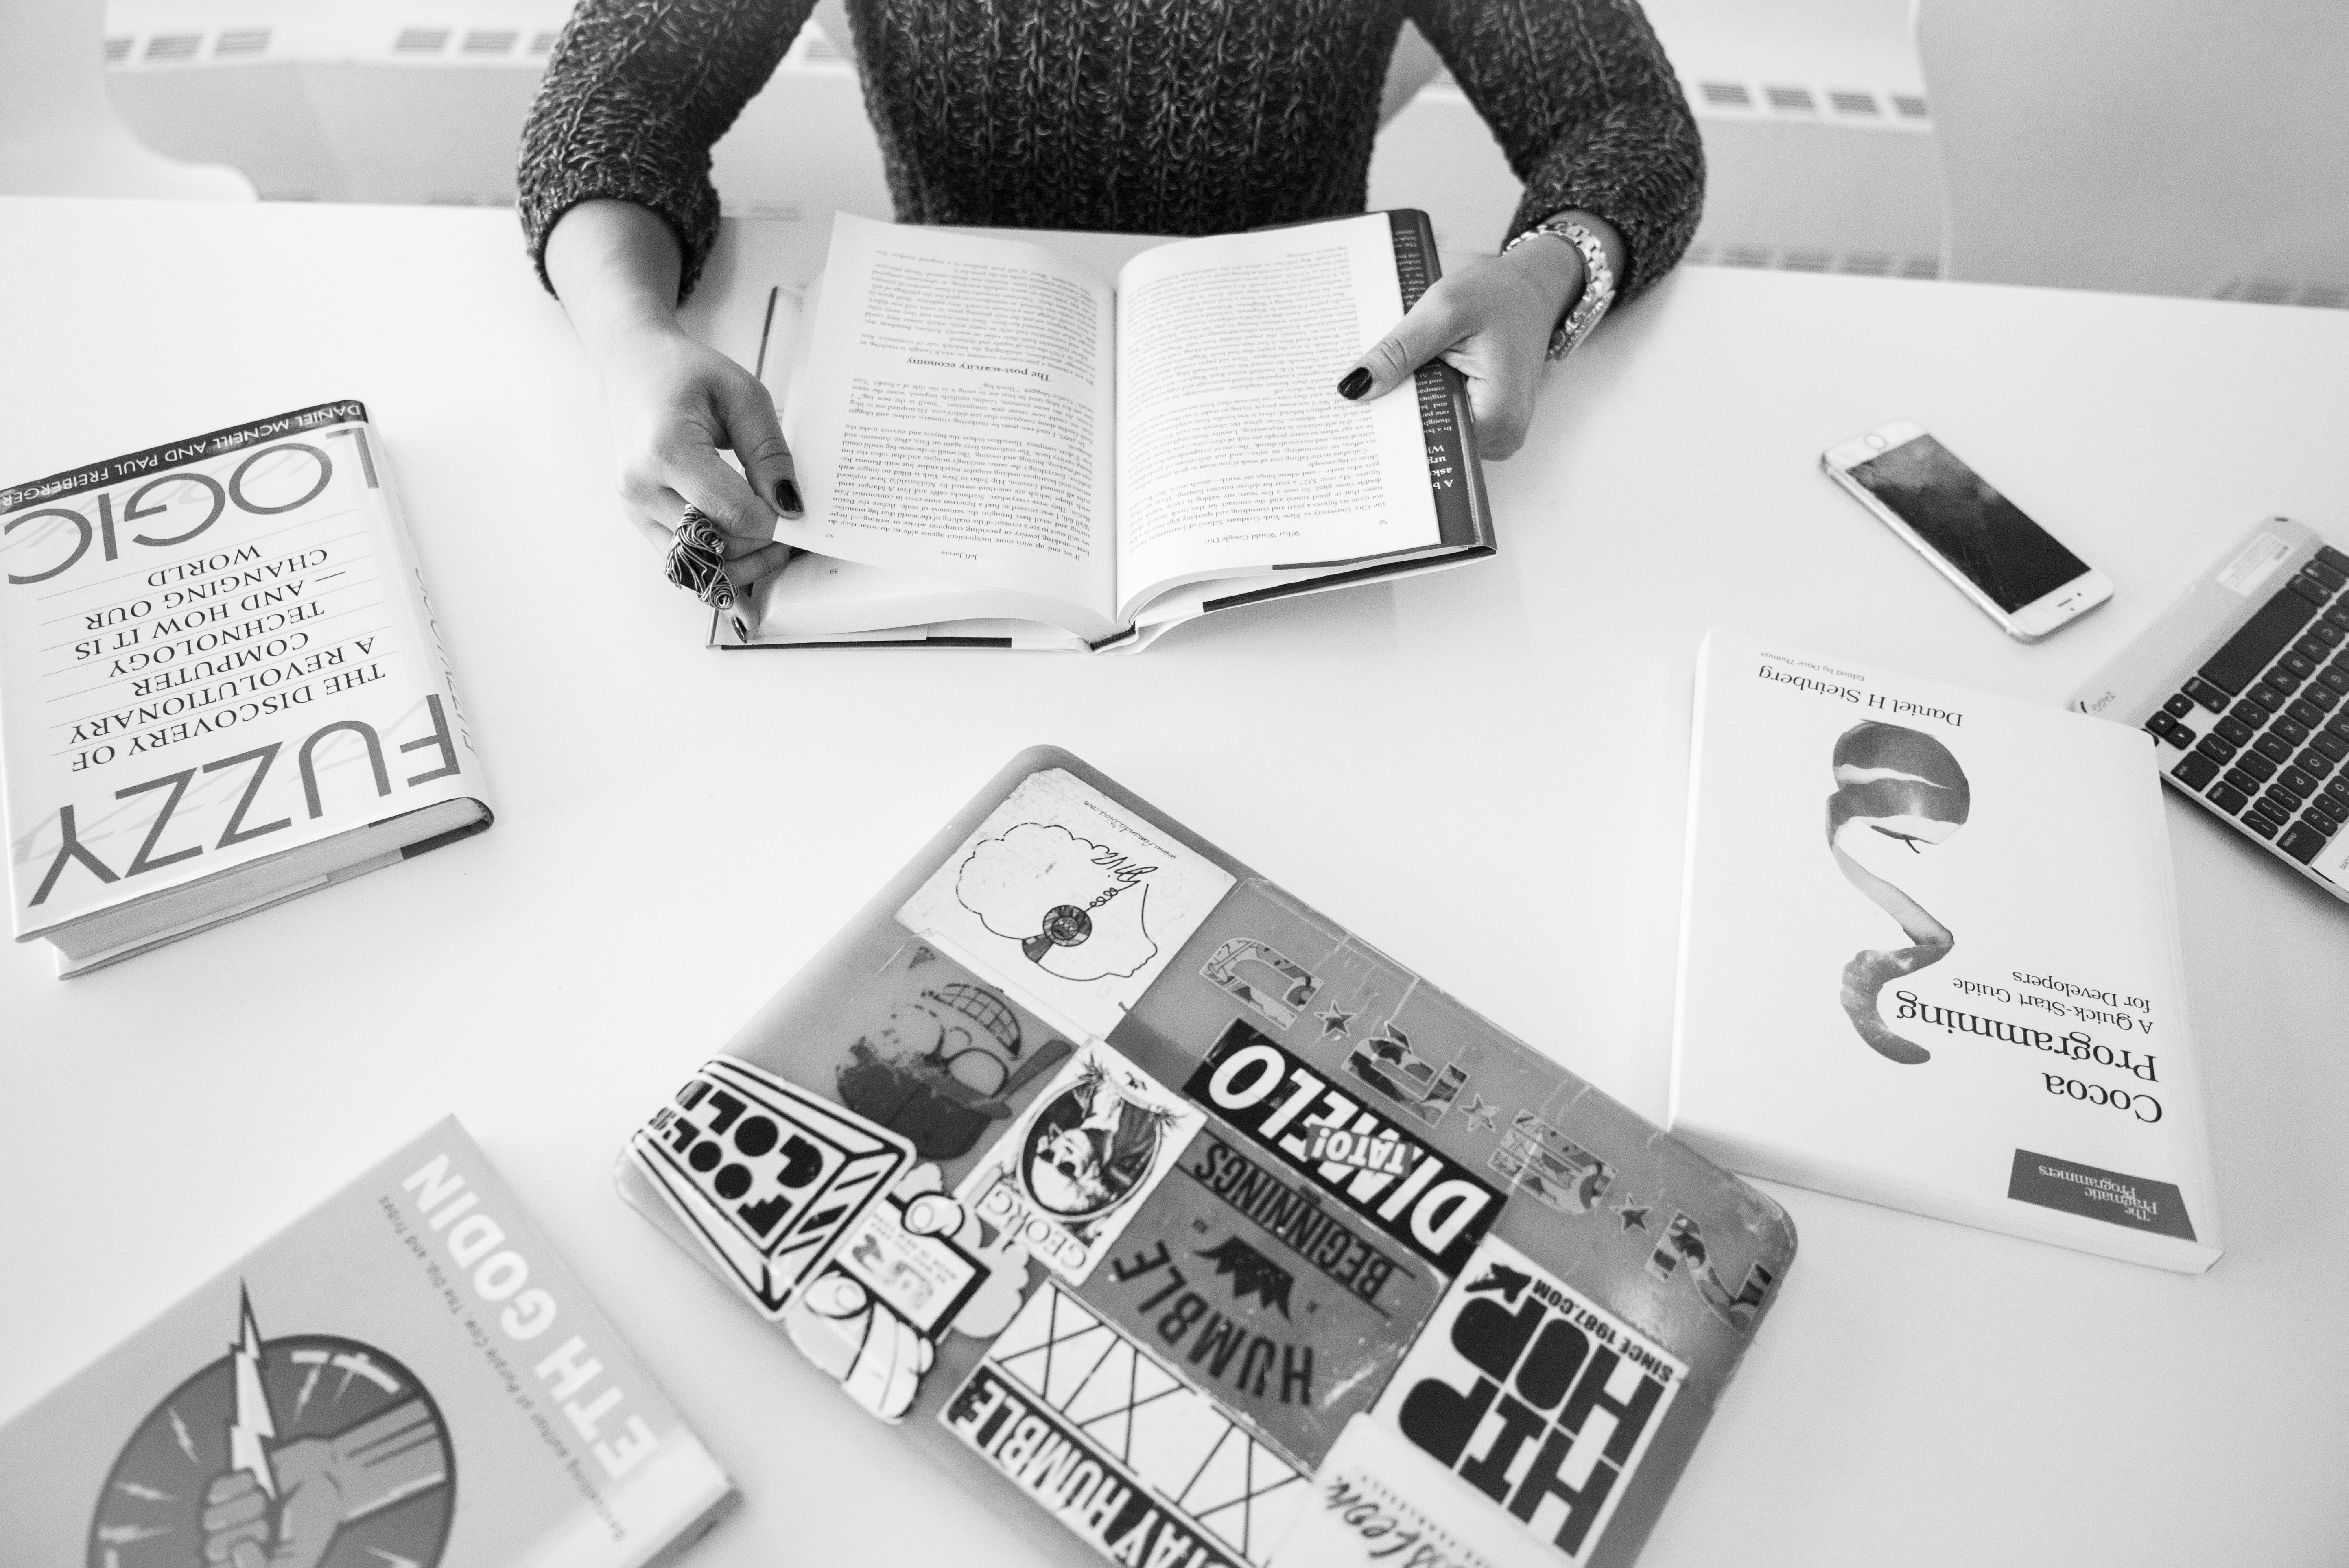 Grayscale Photo of Person Sitting Near Table With Books